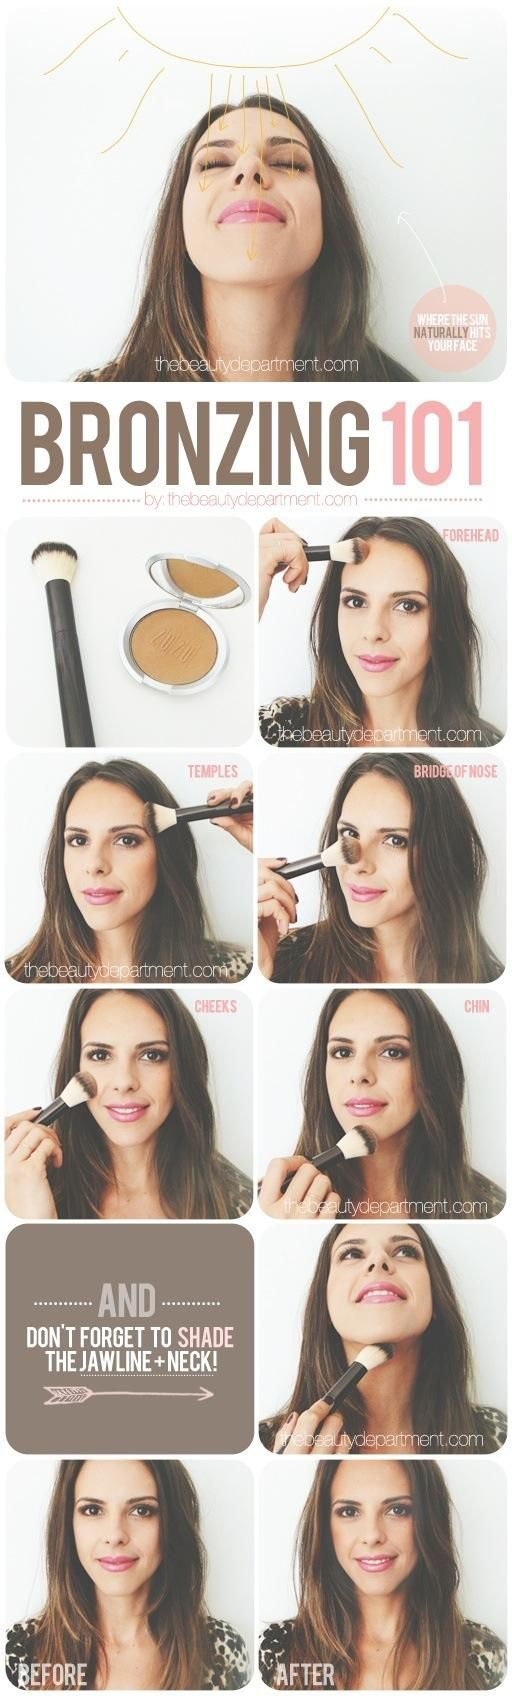 Beauty Tips: Makeup Tips: Bronzer Tips: How to apply bronzer